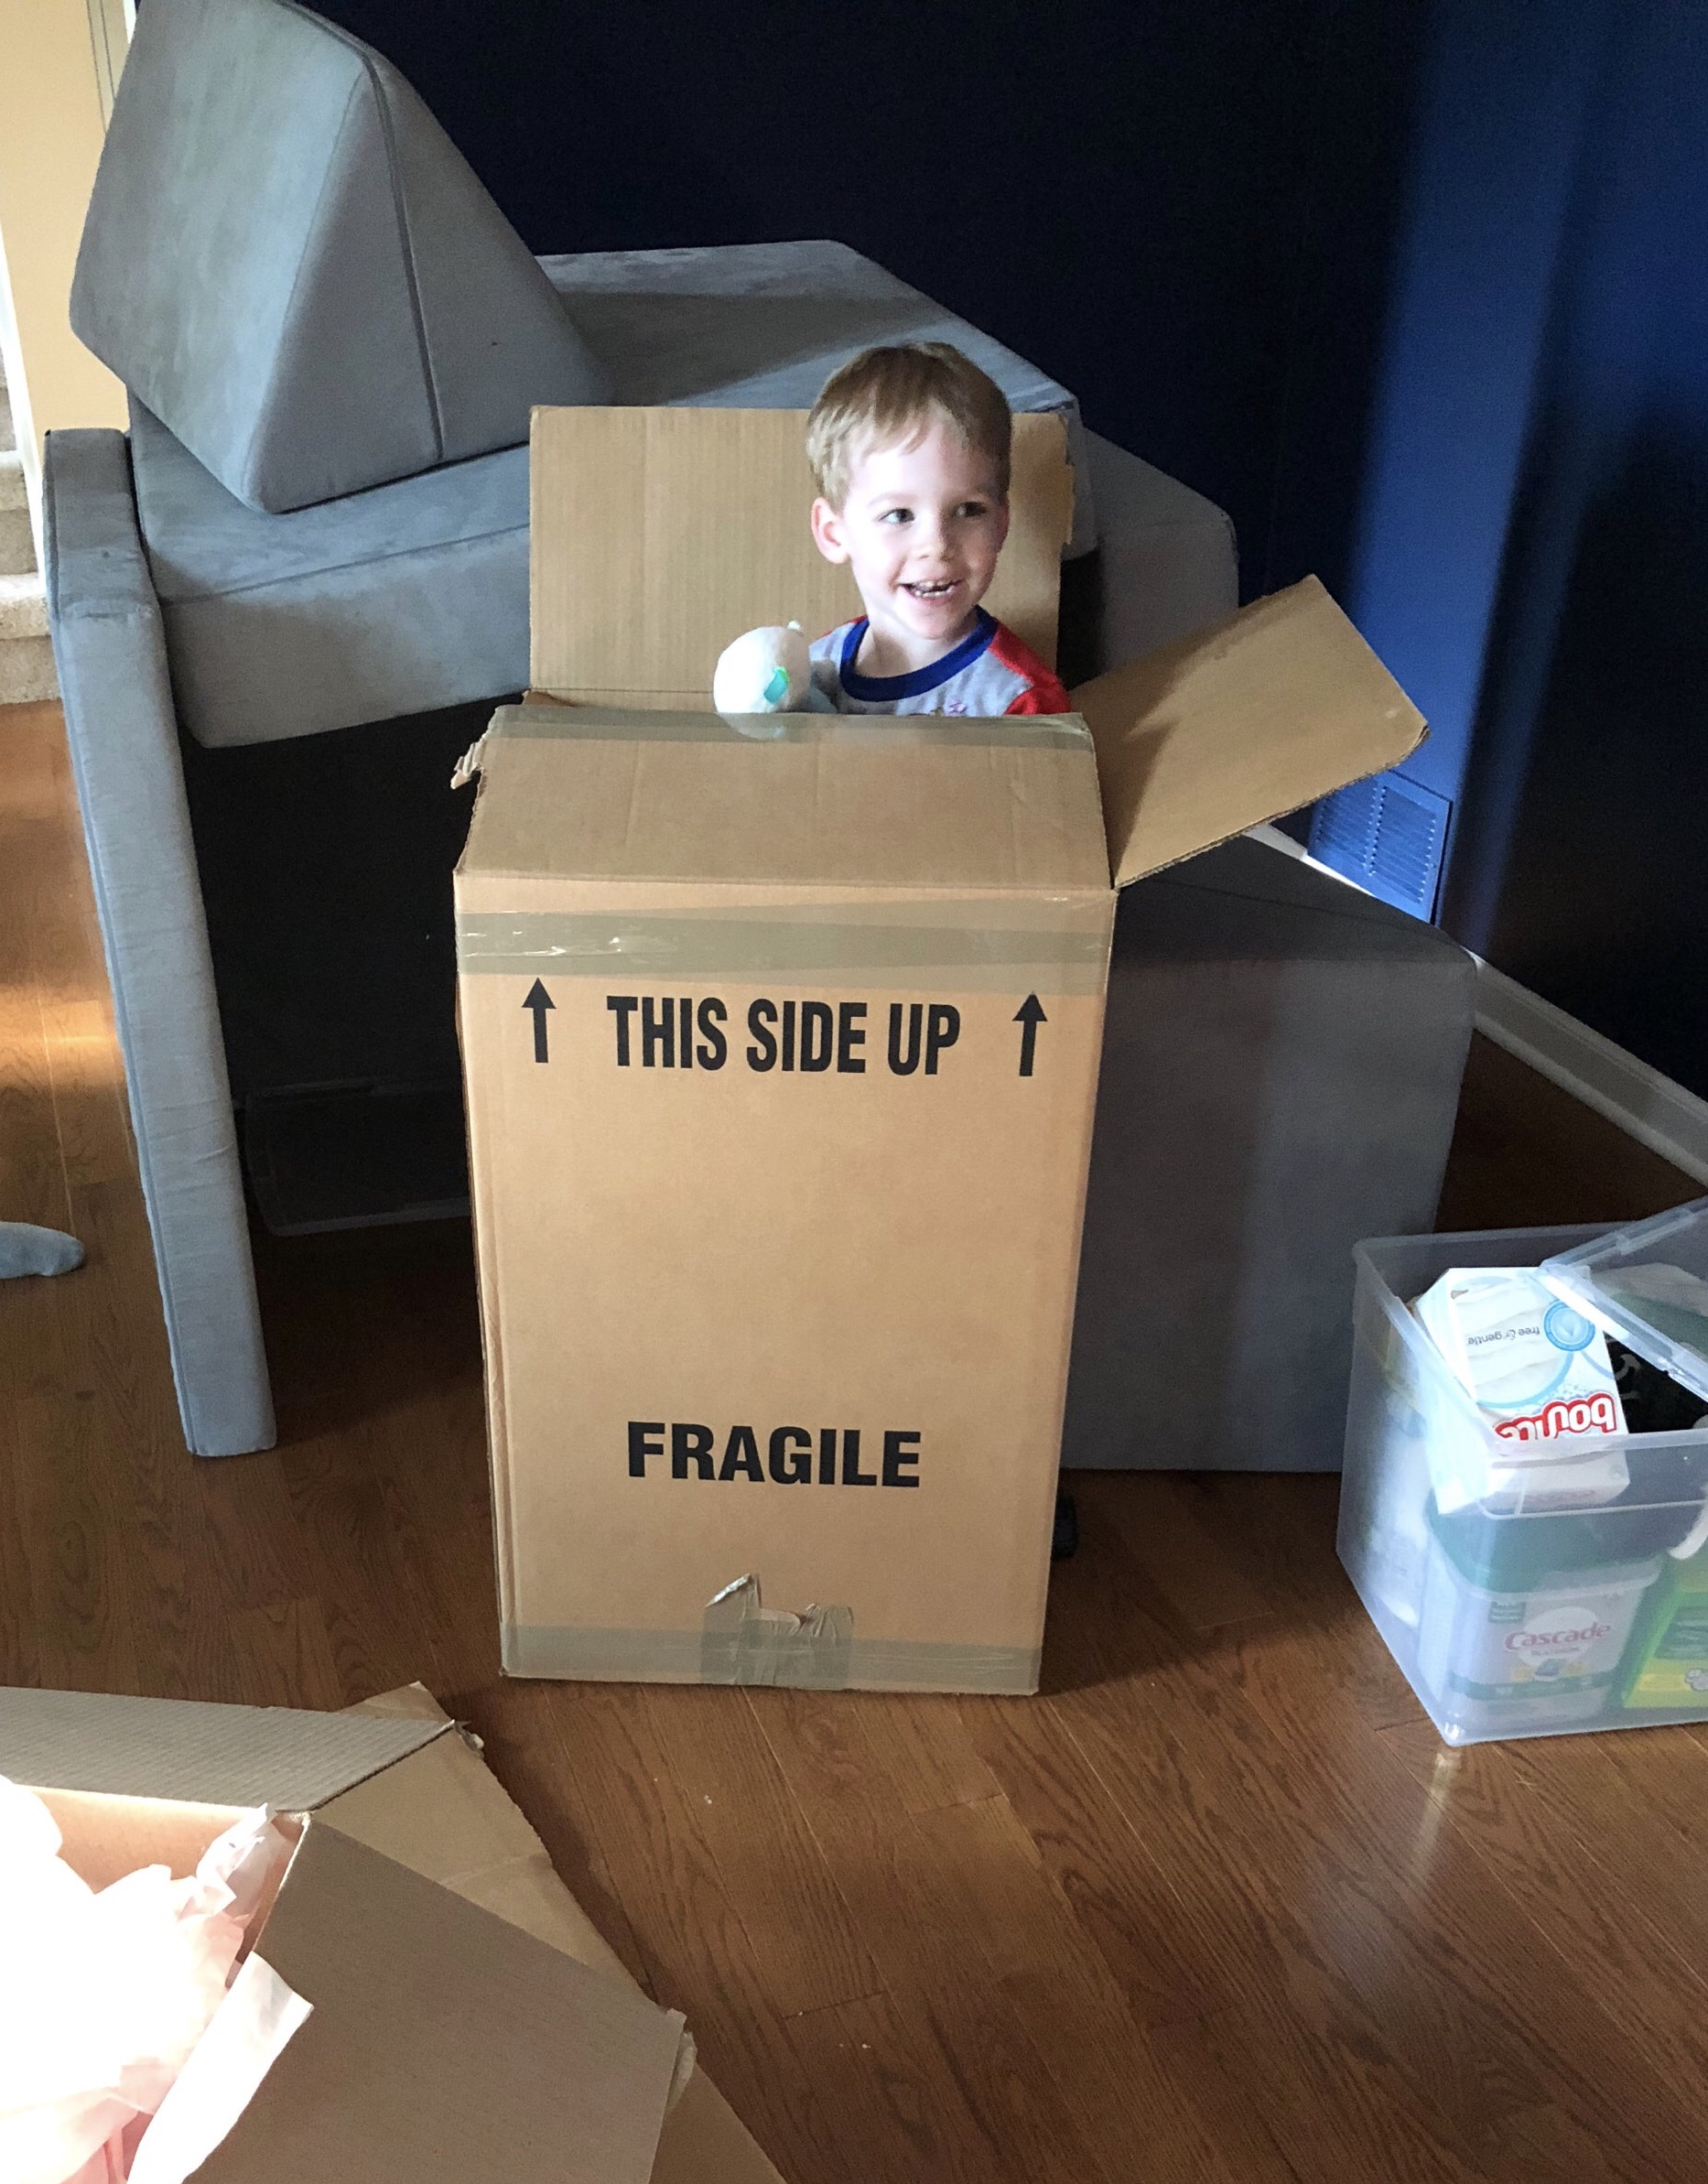 My family and I moved this past summer. Yes, that's my little boy in a box but, also notice the clear, lidded utility bin.